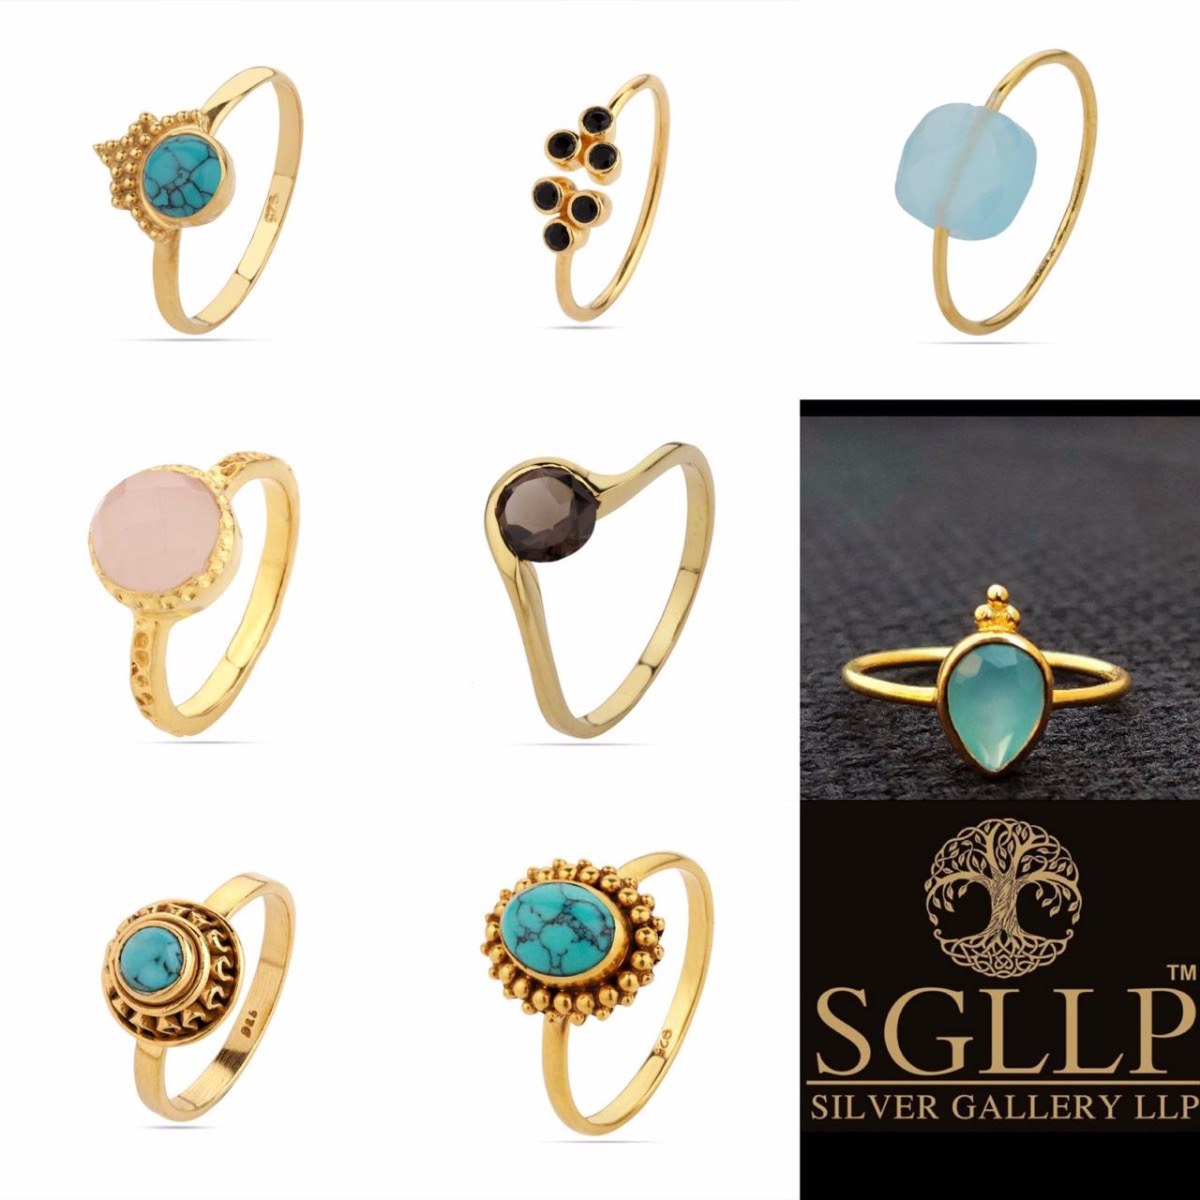 STERLING SILVER GOLD PLATED RINGS